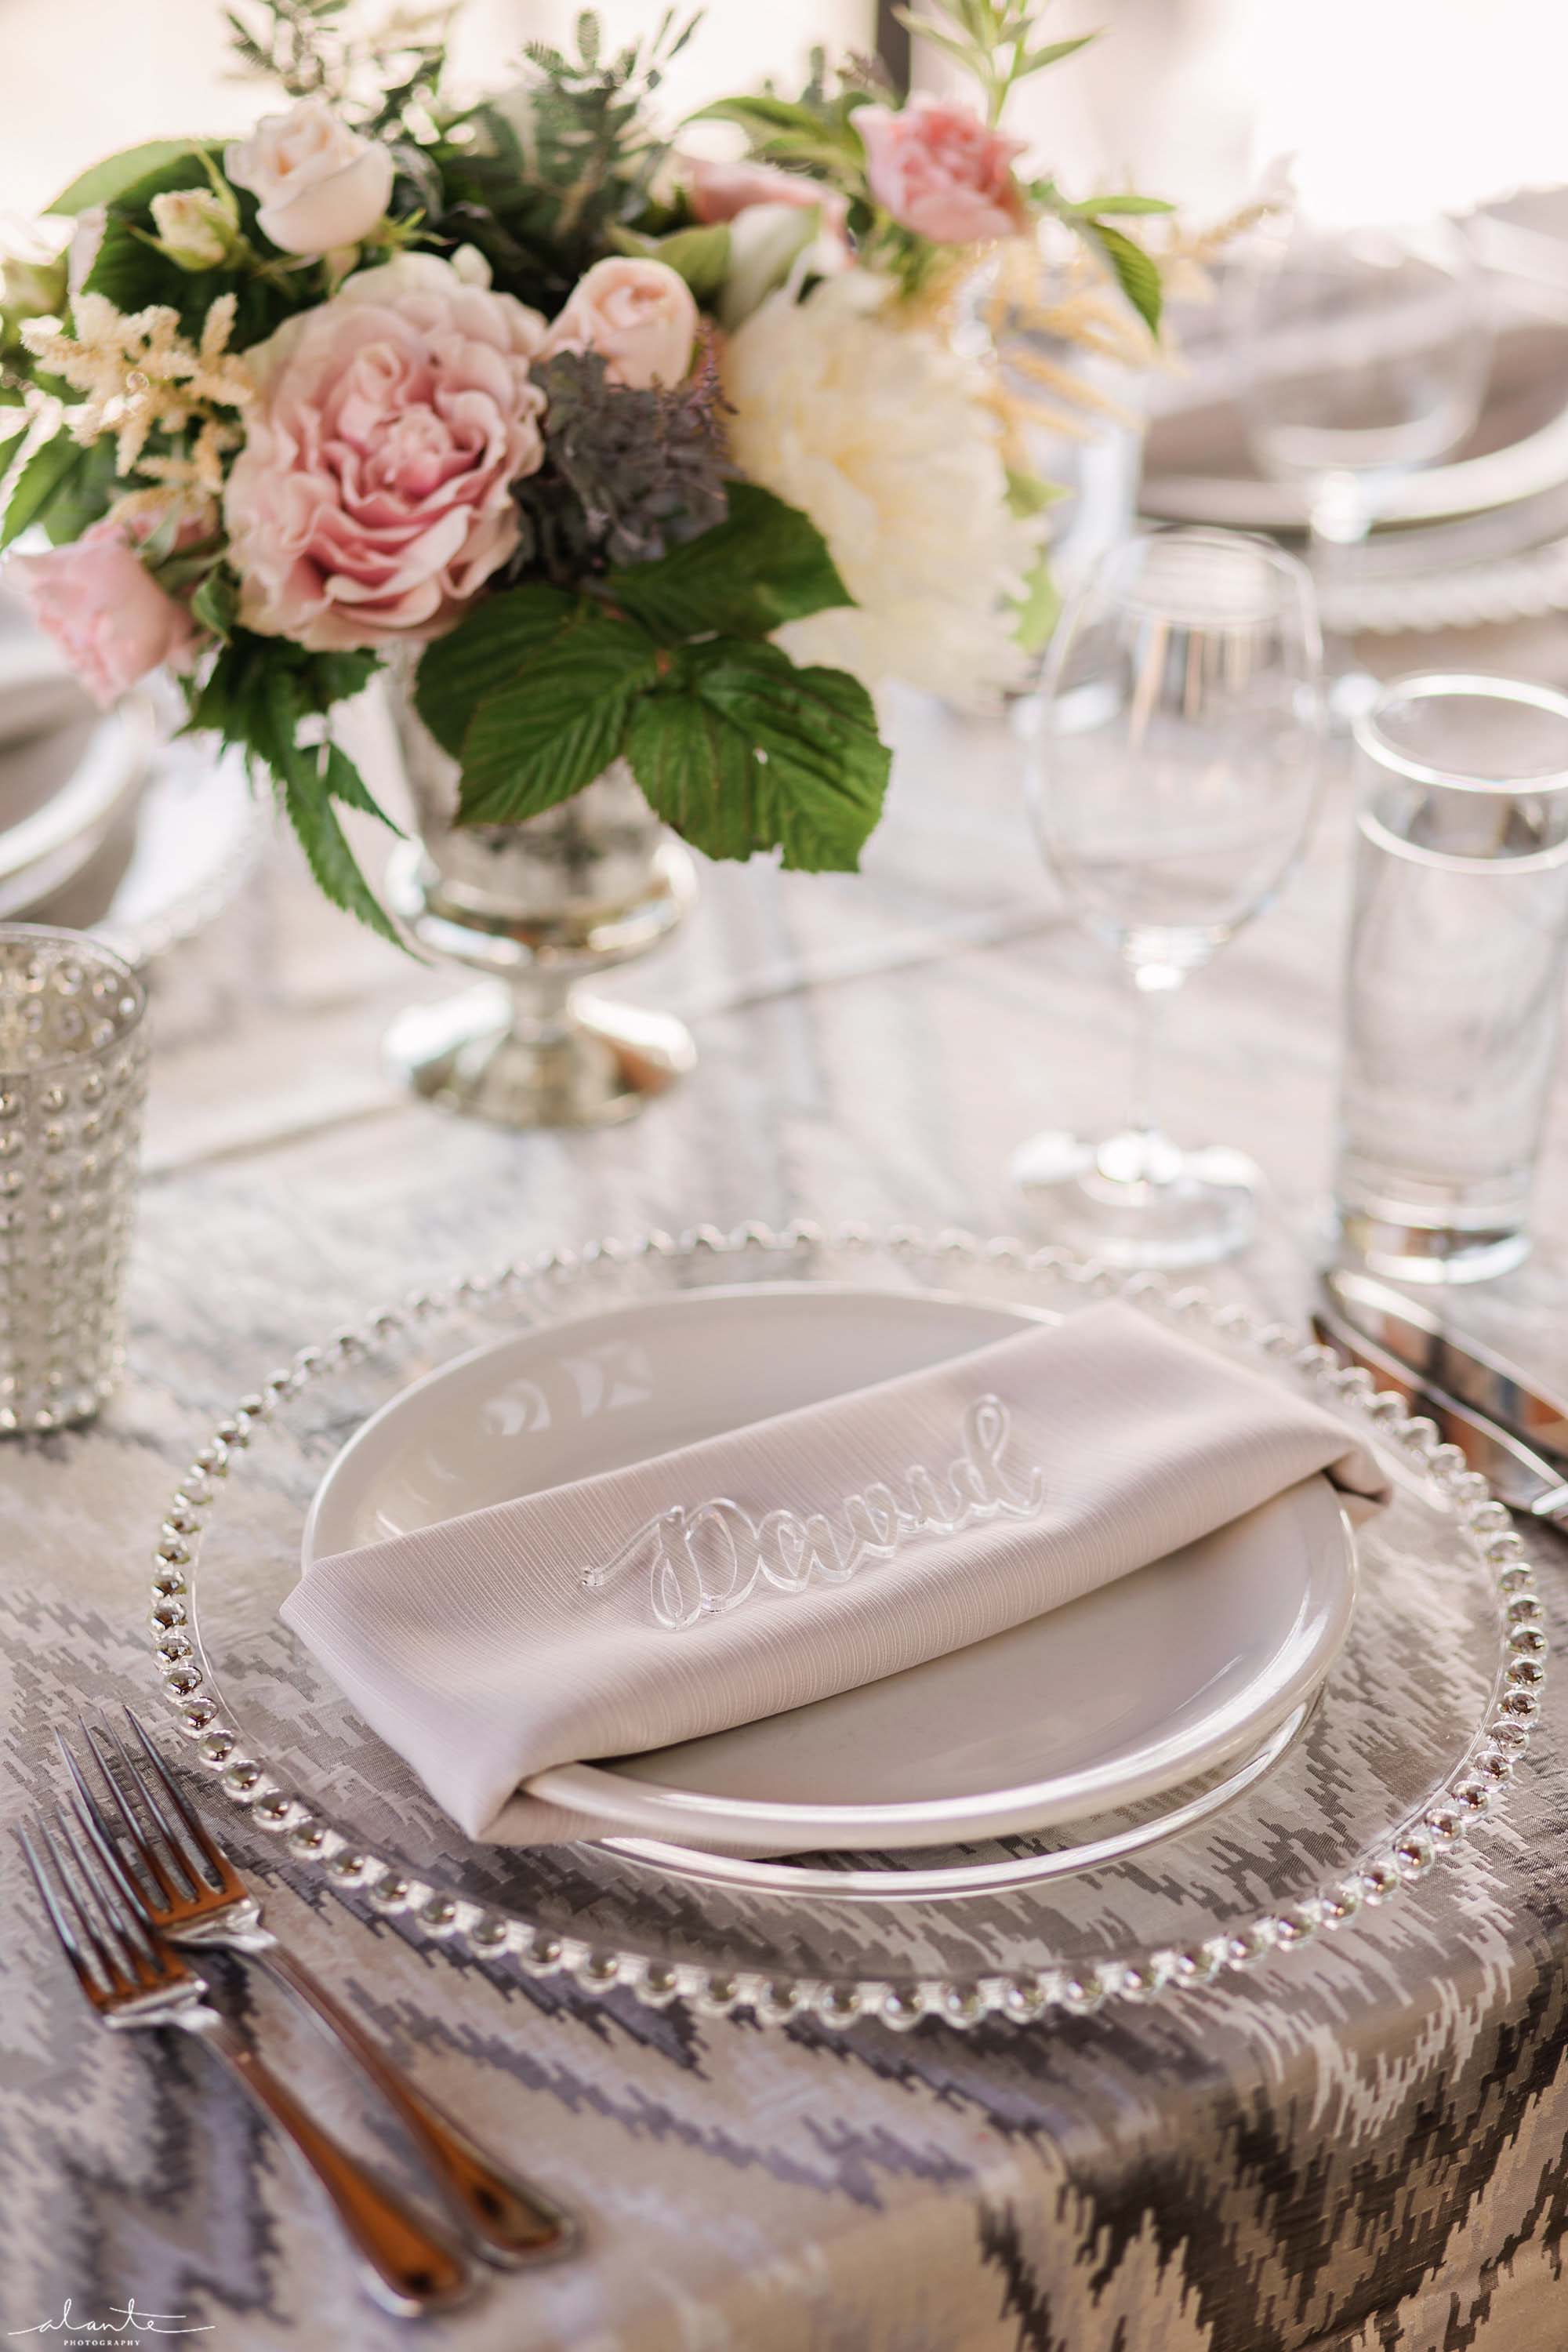 Place setting with lucite escort card and flowers - Olympic Rooftop Pavilion wedding with pink peonies by Flora Nova Design Seattle